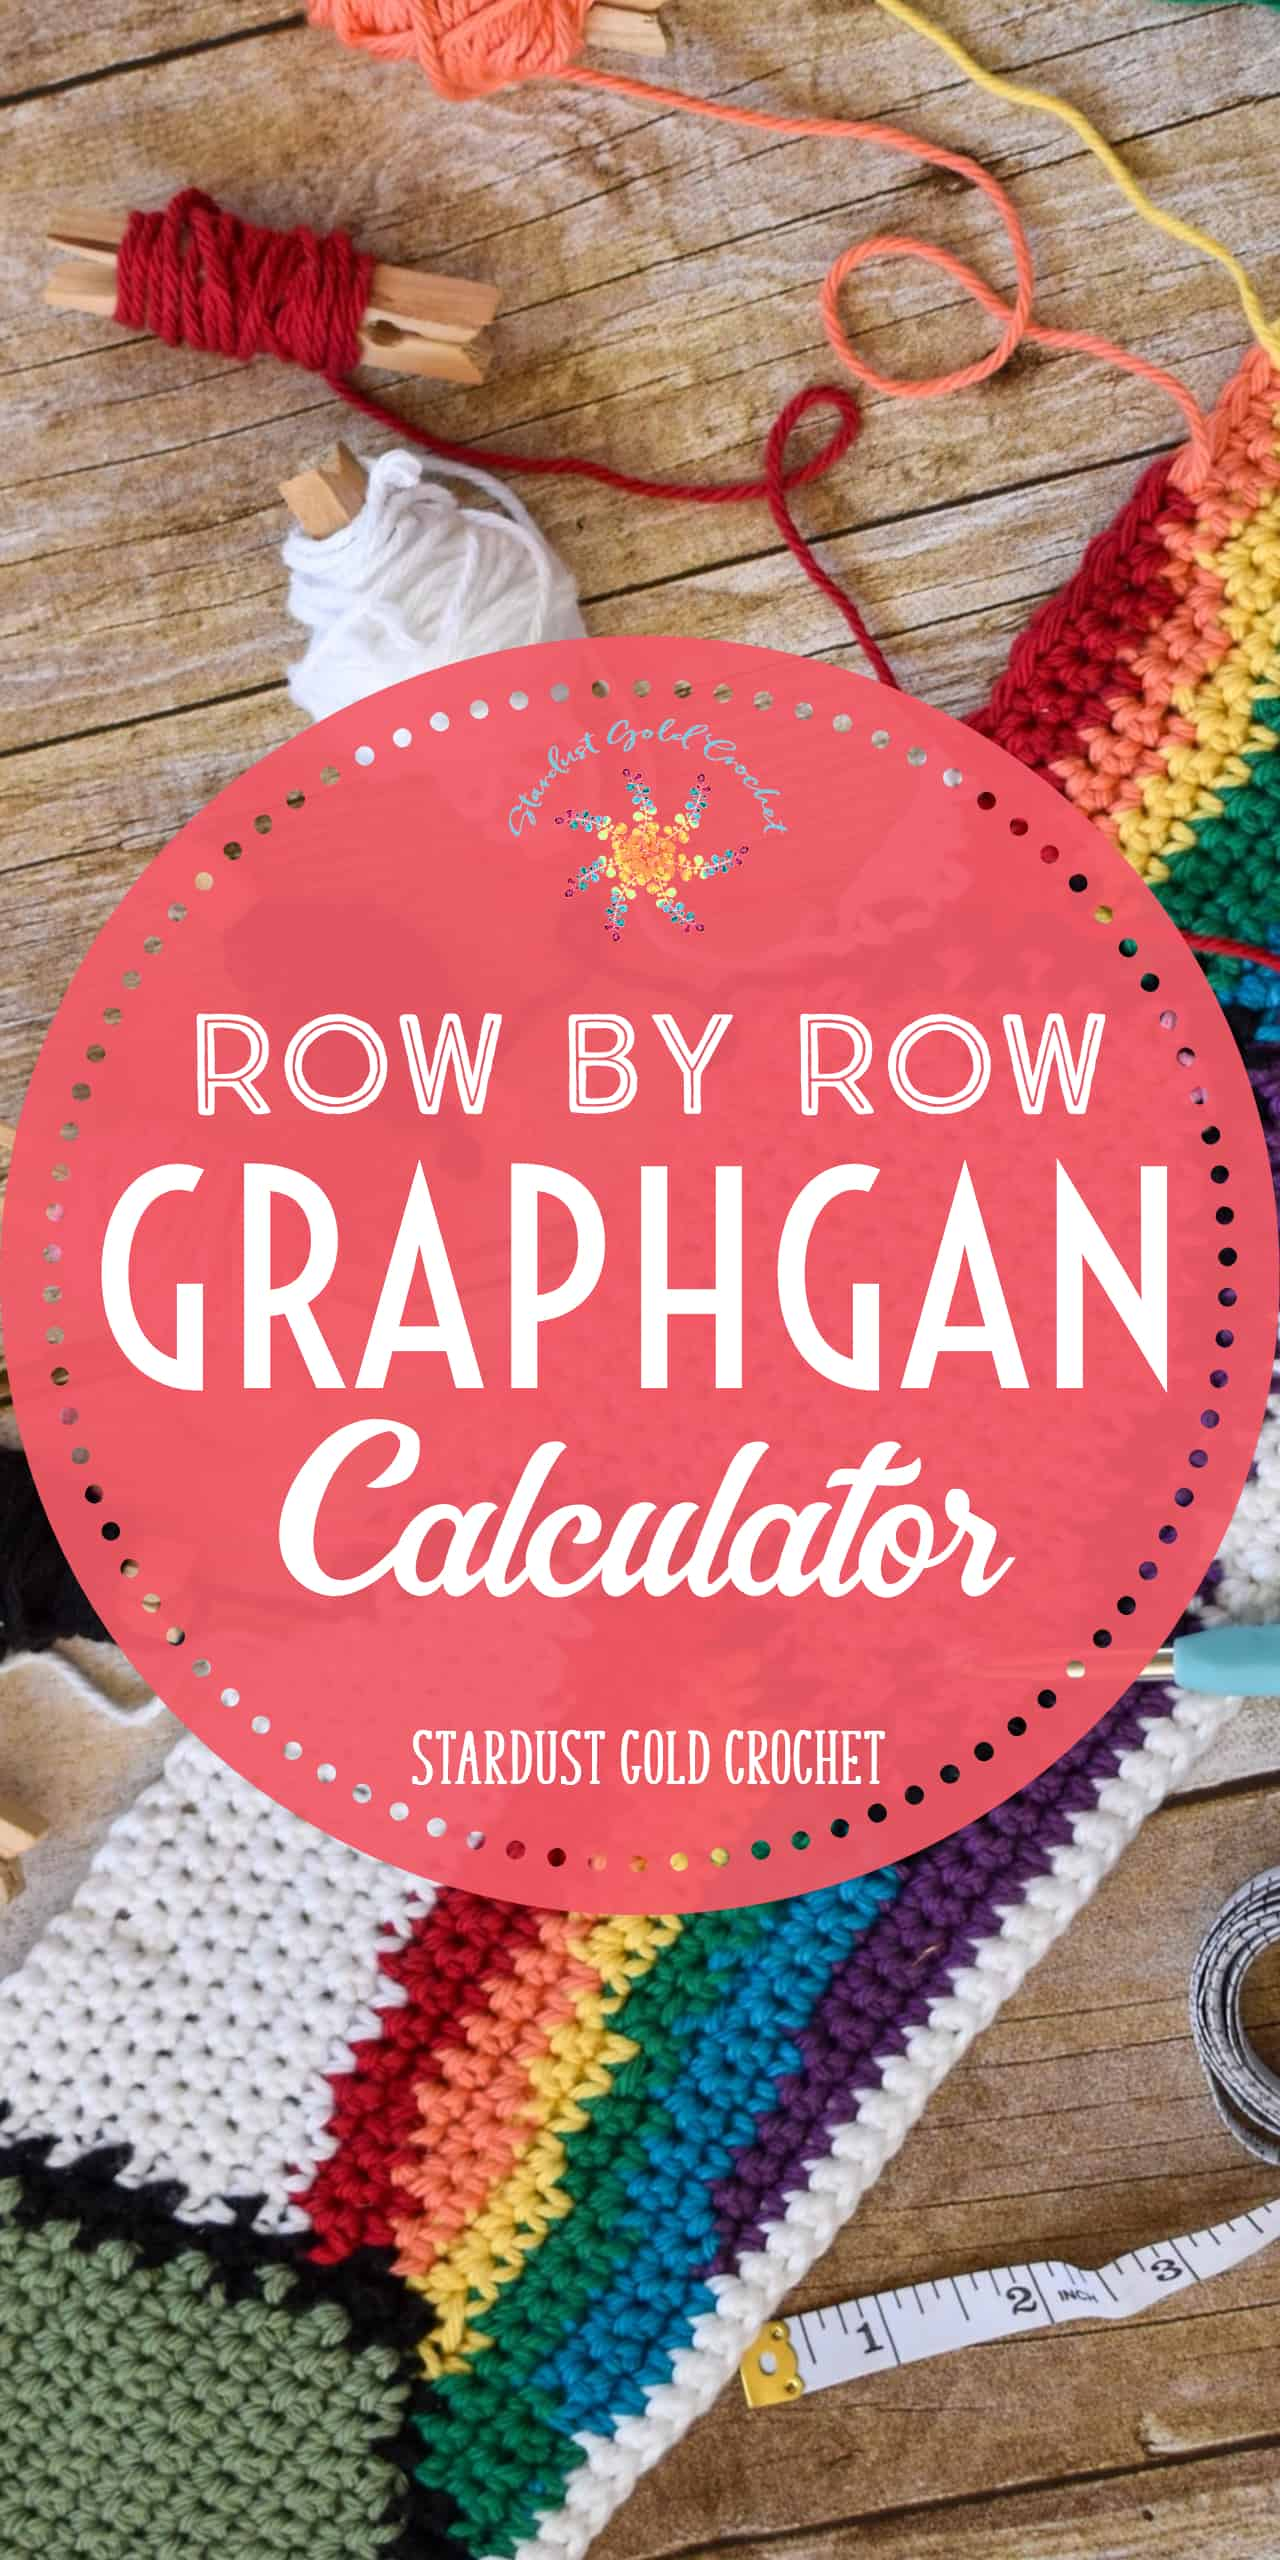 Row by Row Graphghan Calculator Pinterest Pin